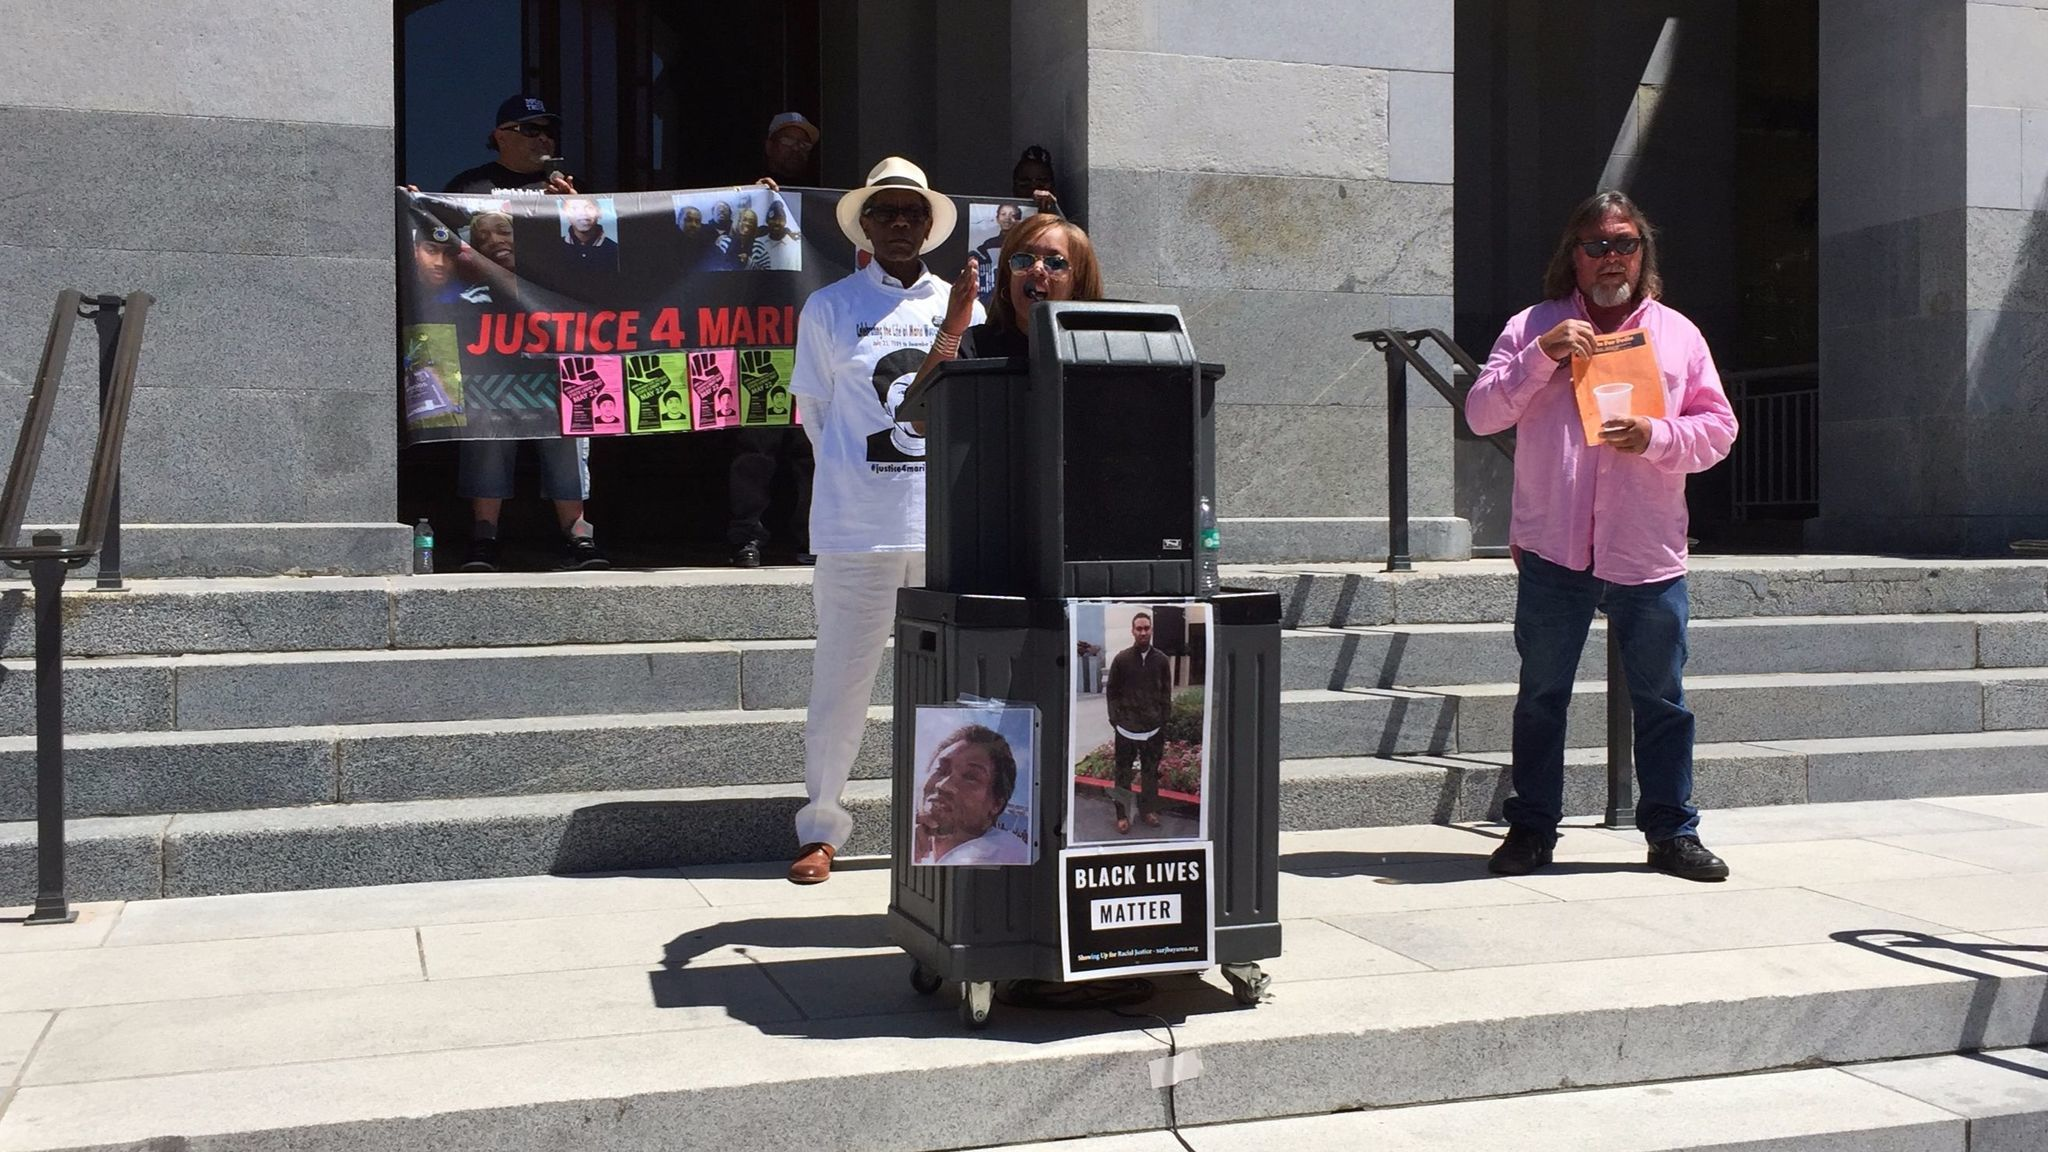 Gwendolyn Woods, whose son Mario was killed by San Francisco police in 2015, speaks at a small rally outside the Capitol in May 2017.